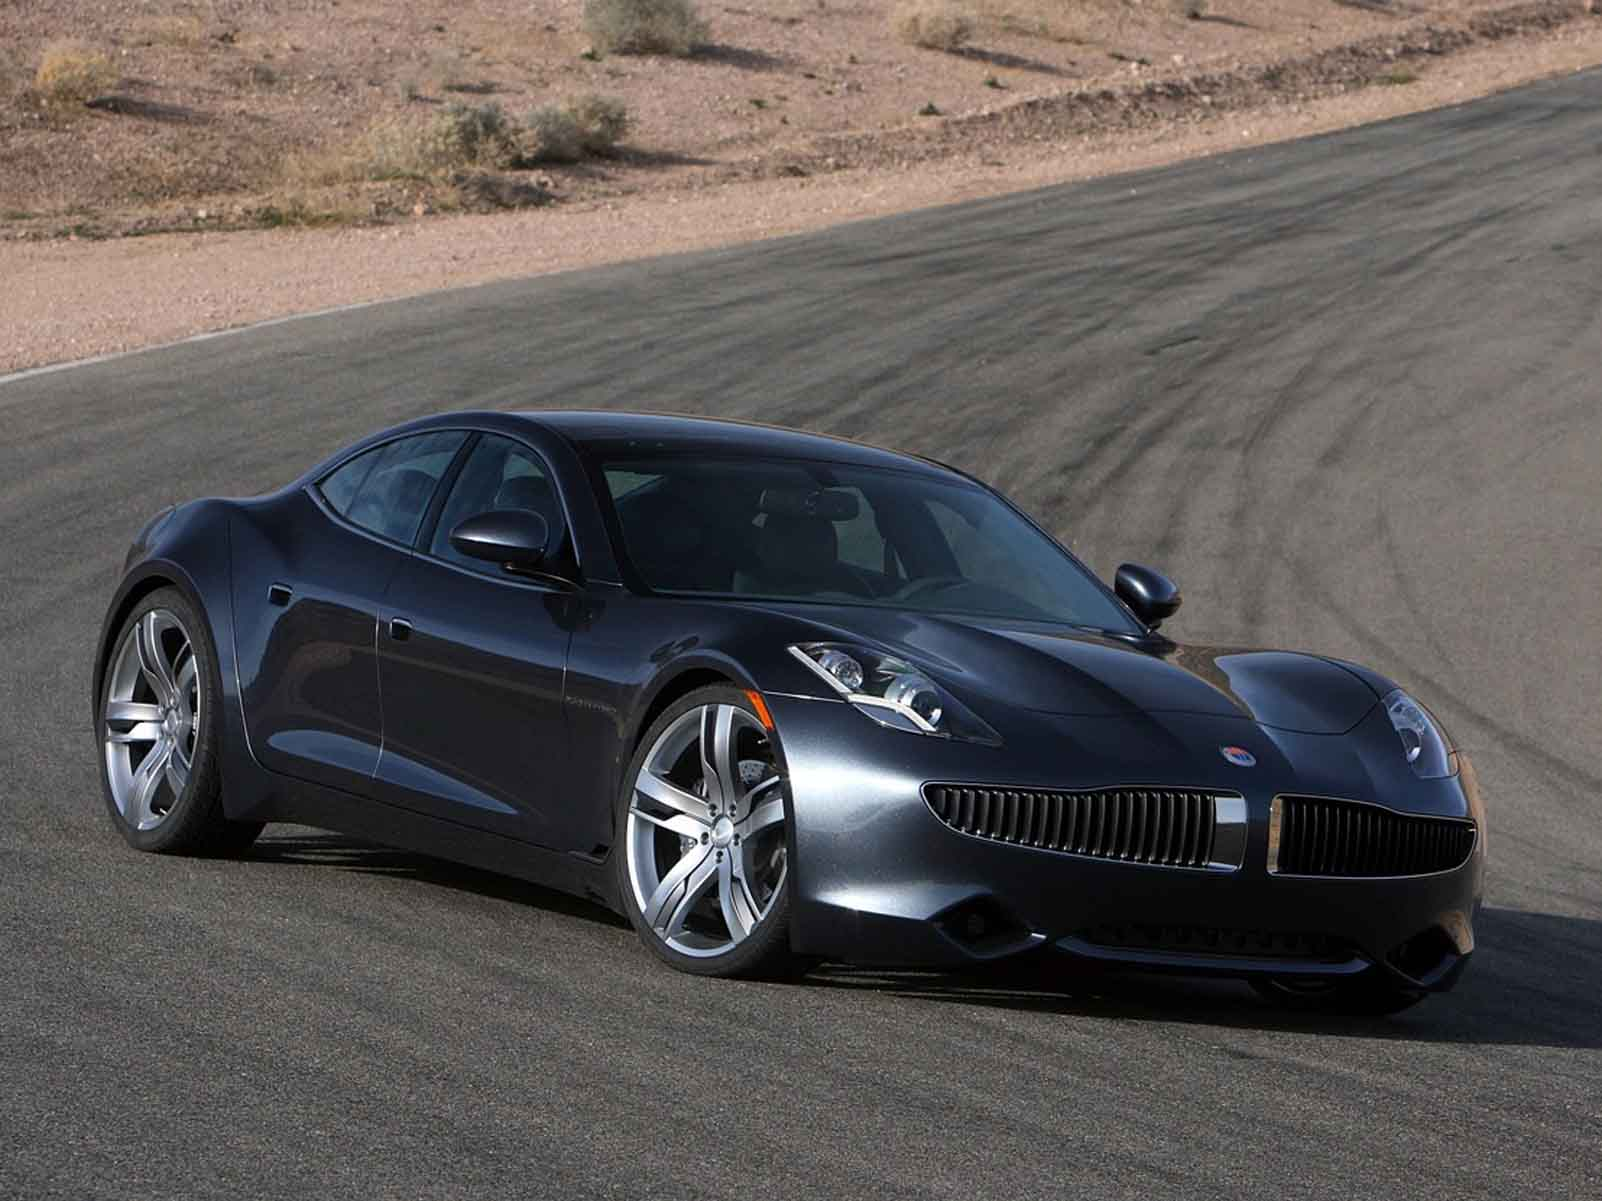 fisker karma essais fiabilit avis photos prix. Black Bedroom Furniture Sets. Home Design Ideas